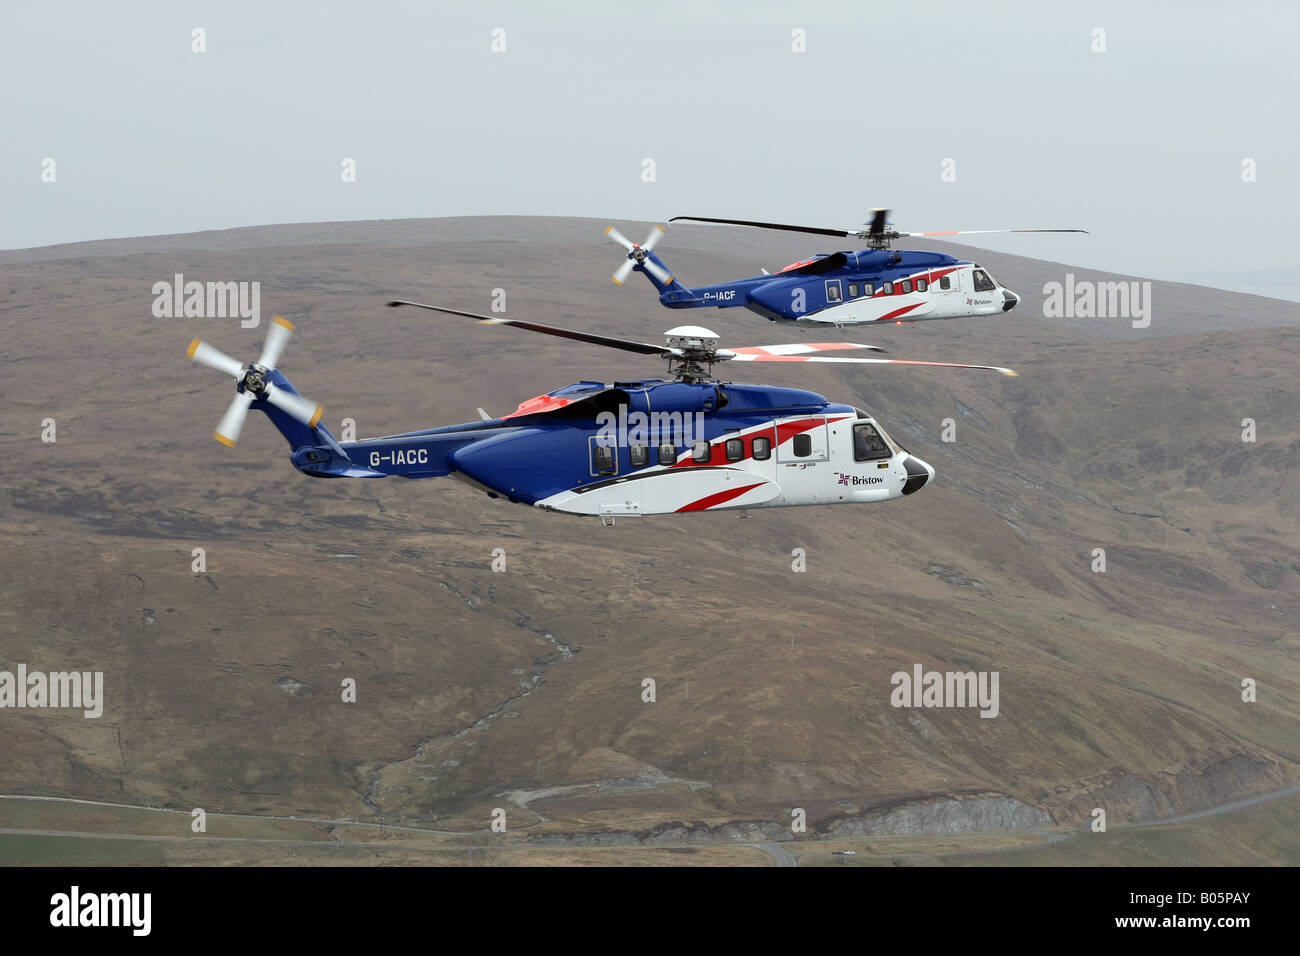 Bristows Sikorsky S-92 Helicopters from Scatsta to transport offshore oil workers pictured flying over Shetland - Stock Image